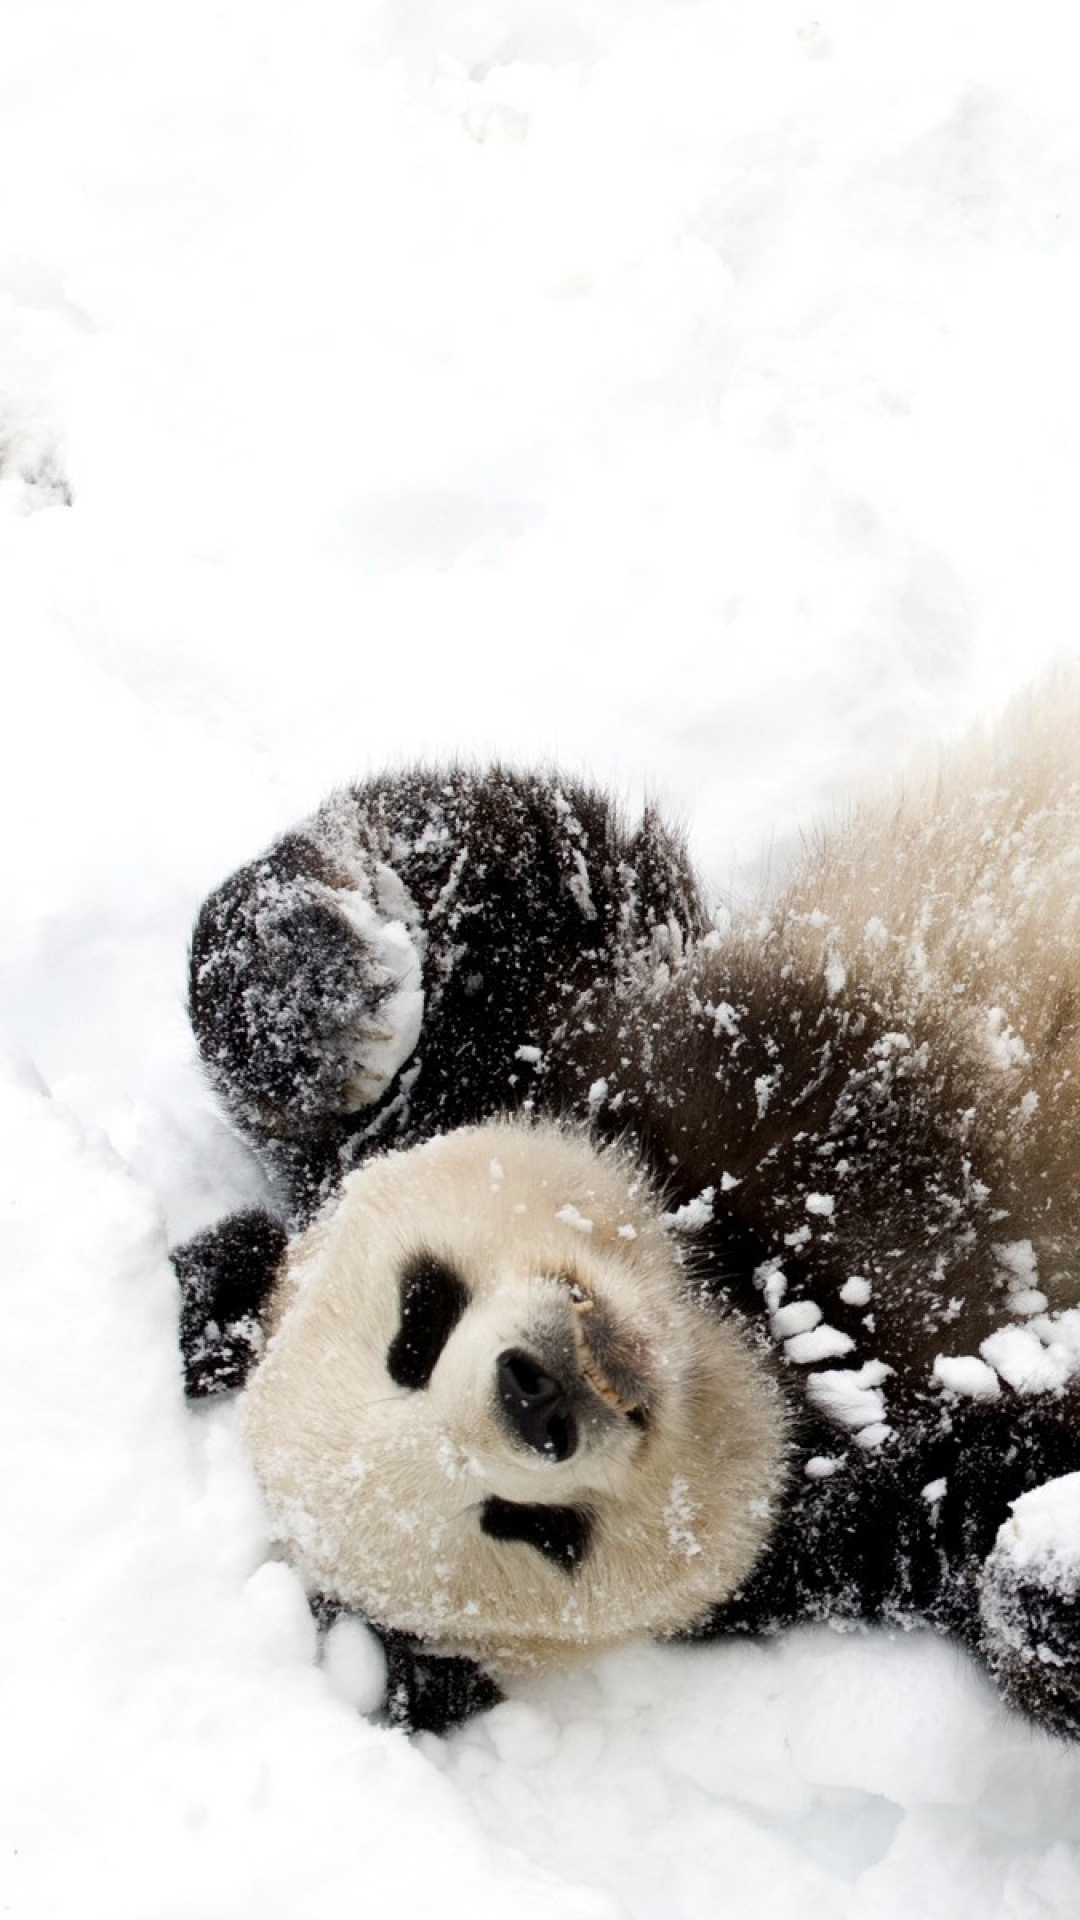 Panda-in-the-snow-%D5%95%D5%95-KO-Livin-large-Pampered-and-coddled-due-to-rarity-an-wallpaper-wpc9008327